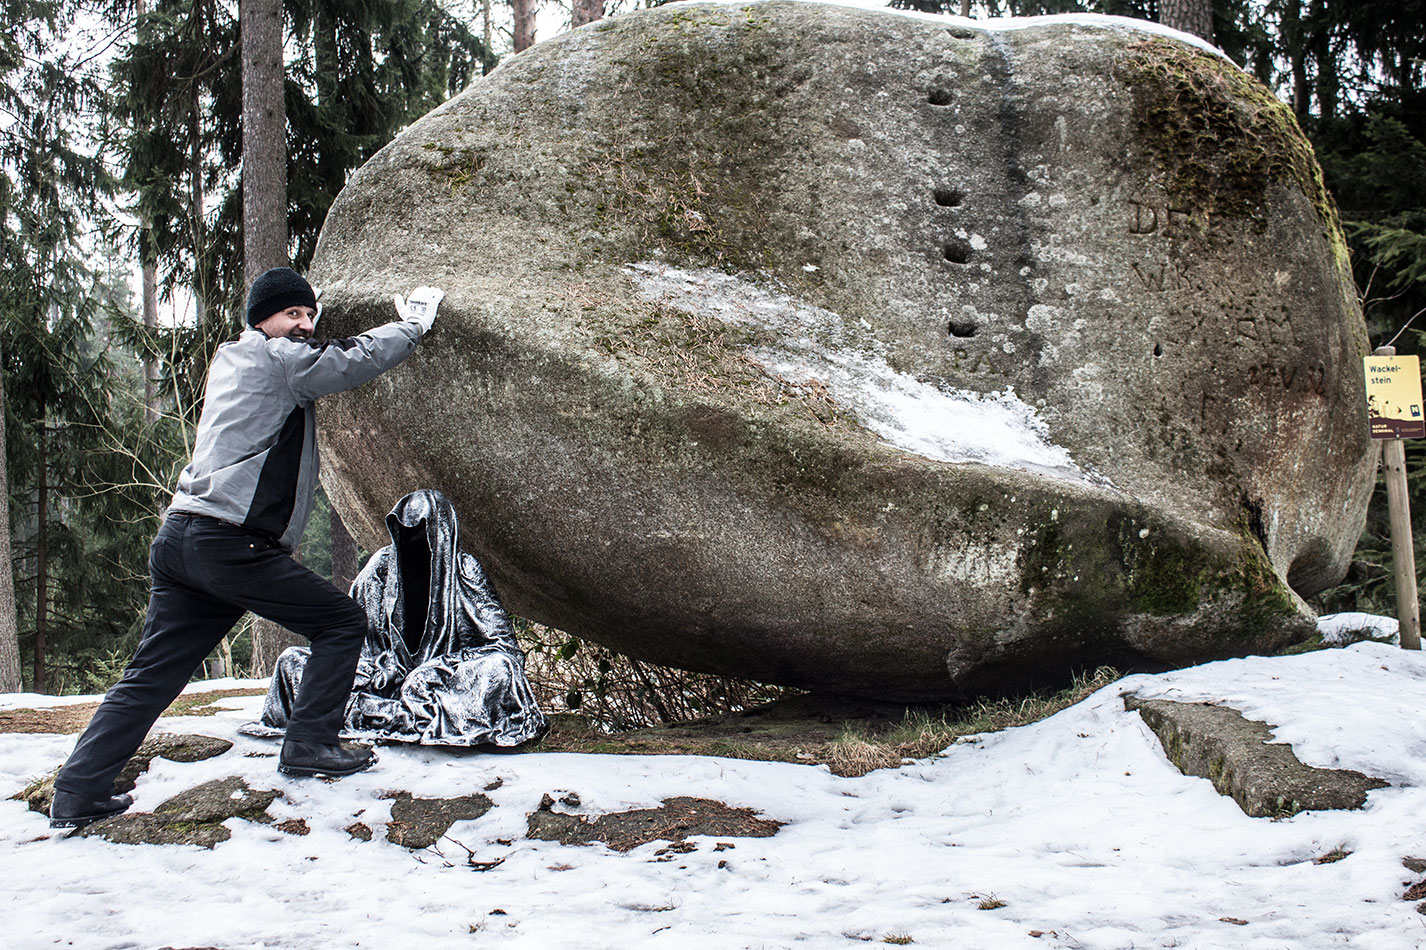 waldviertel-wackelsteine-moving-stones-contemporary-art-design-photography-arts-antique-guardians-of-time-manfred-kili-kielnhofer-7694